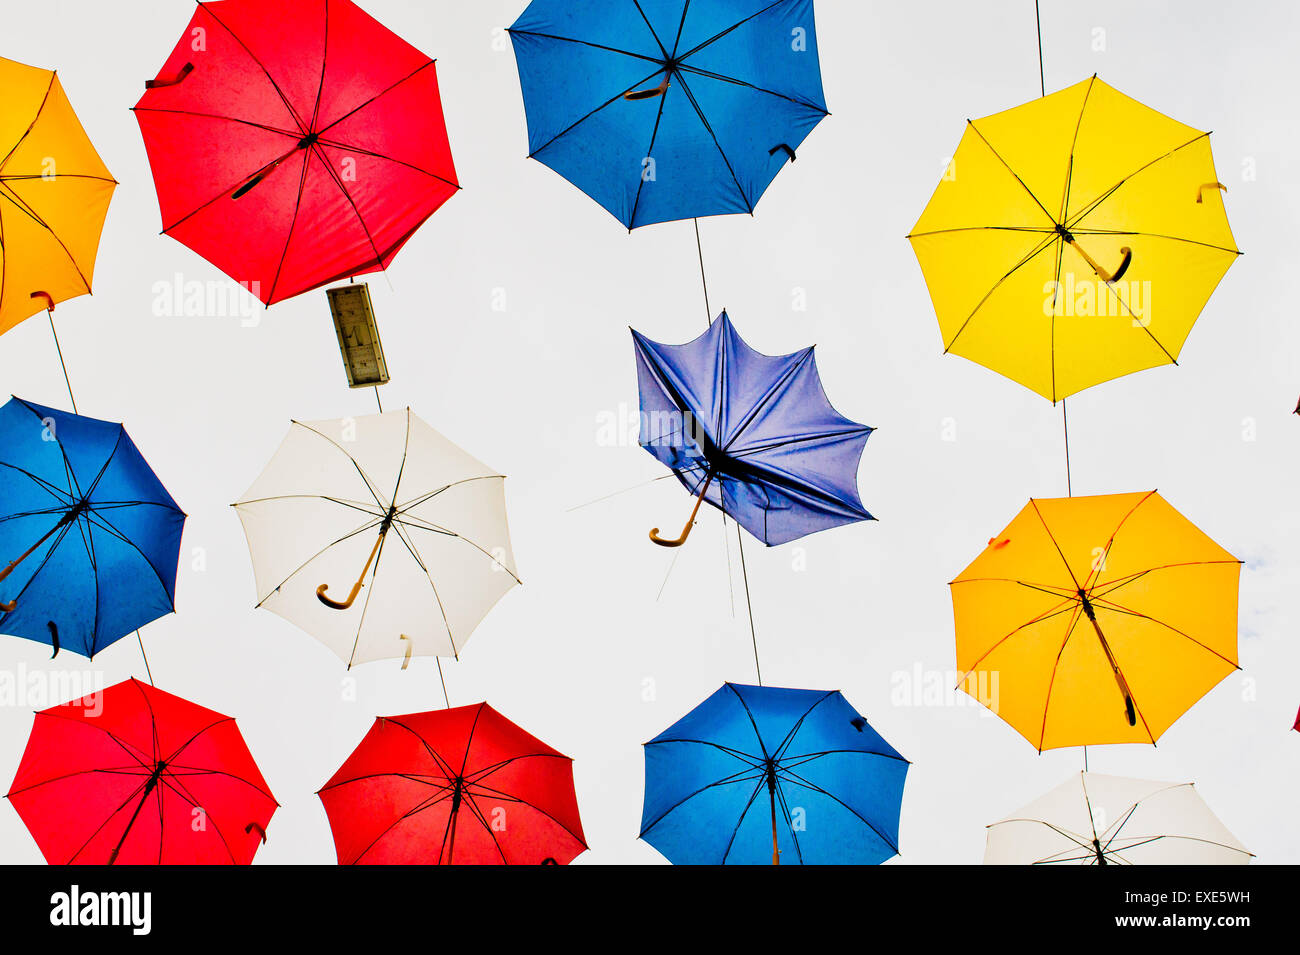 An overhead display of umbrellas in Turkey Stock Photo